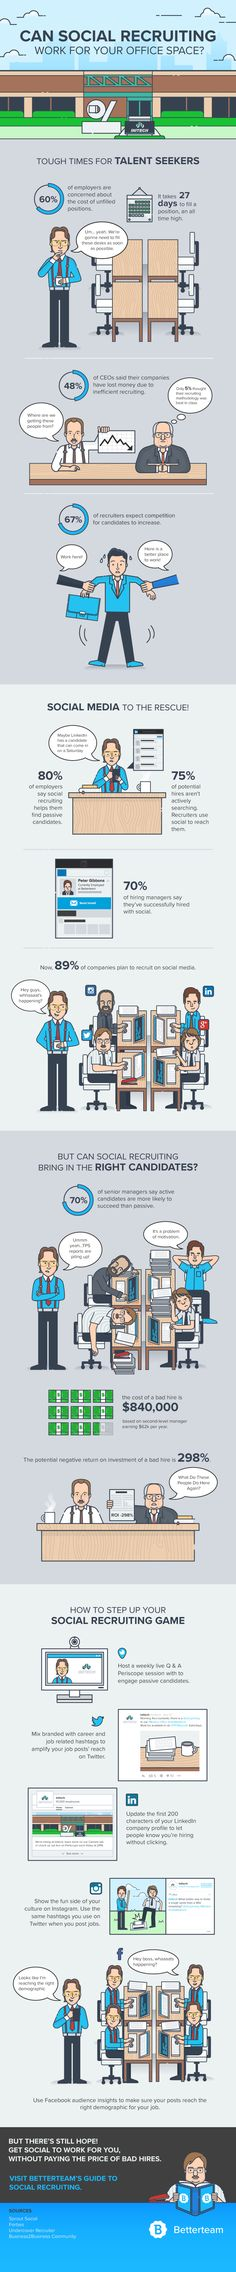 Can Social Recruiting Work for Your Office Space? #Infographic #Career #Job #SocialMedia